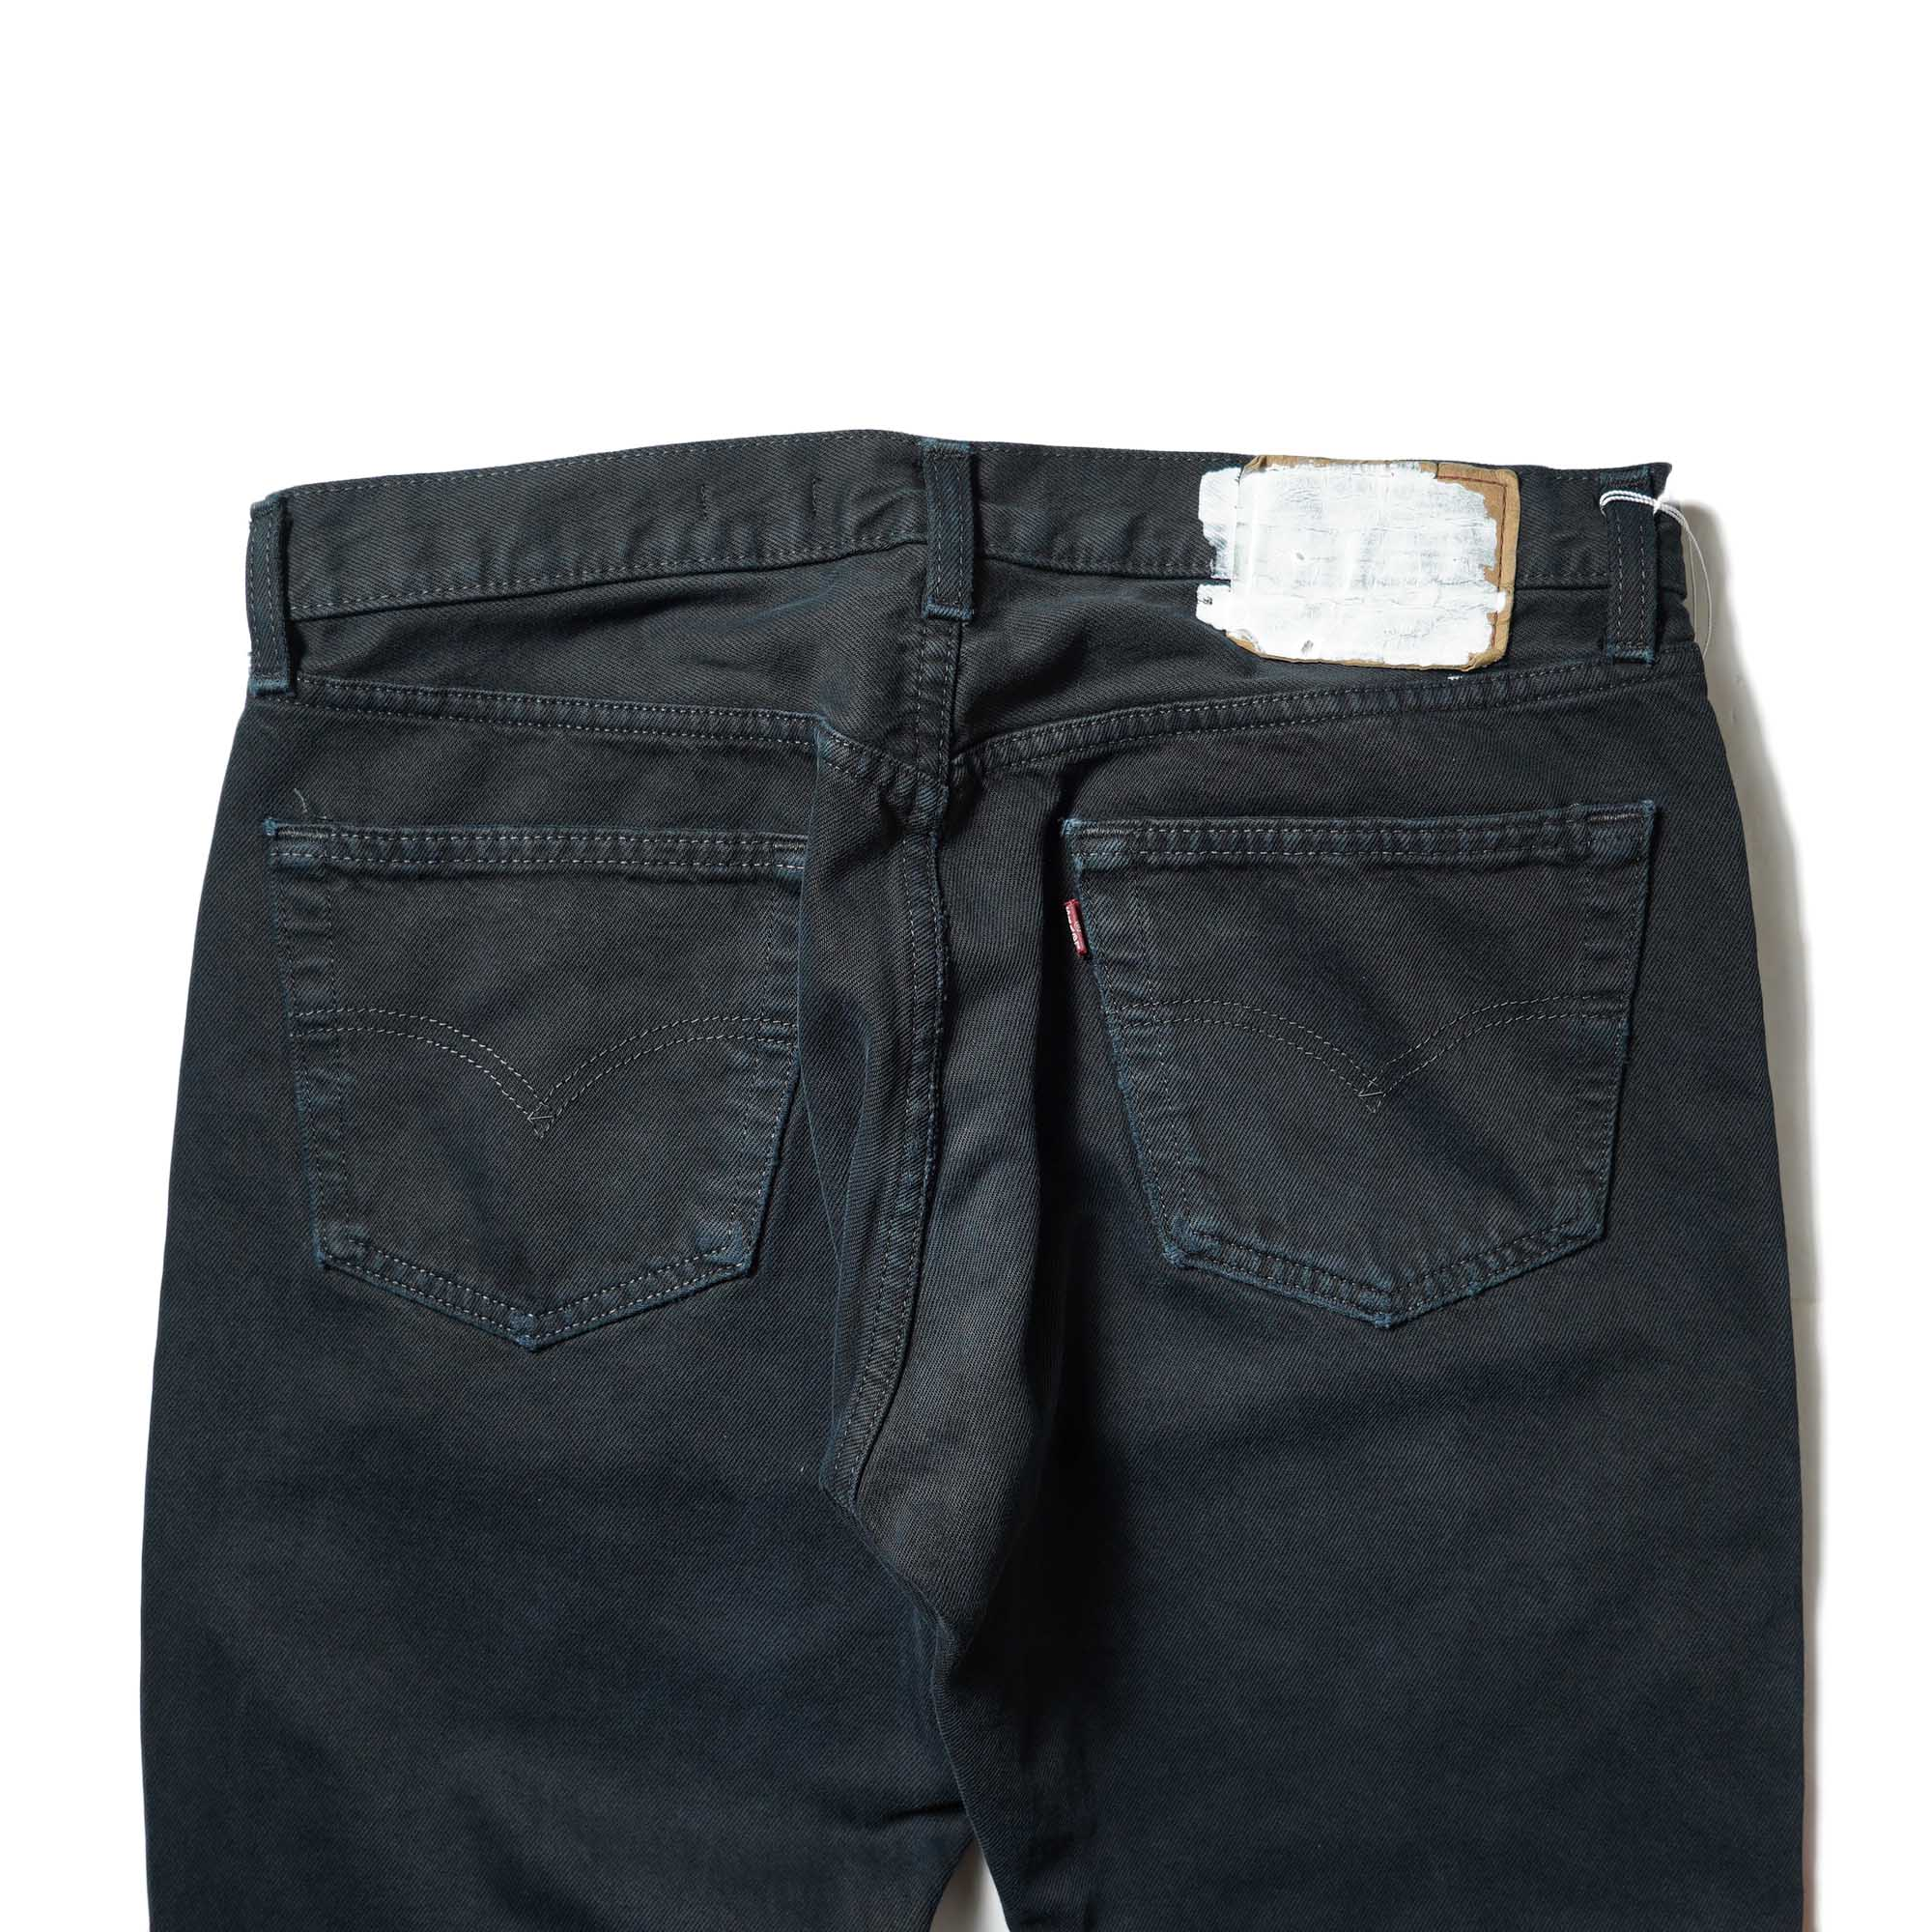 OLD PARK / Western Jeans2 Black (Lsize-A)ヒップポケット